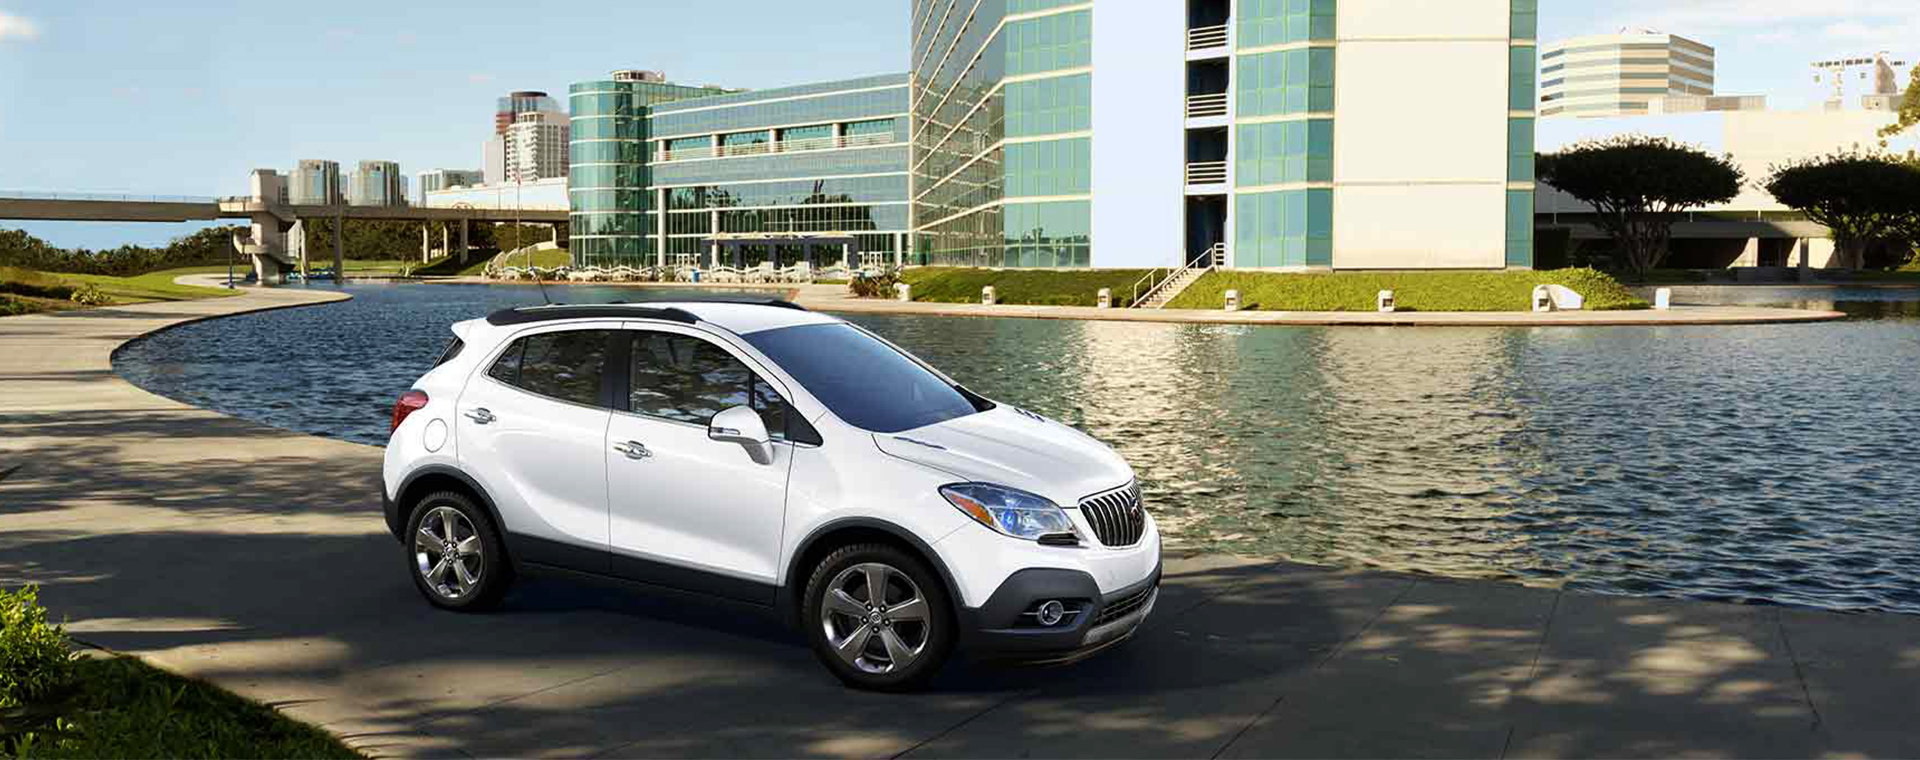 New Encore inventory at Quirk Buick GMC